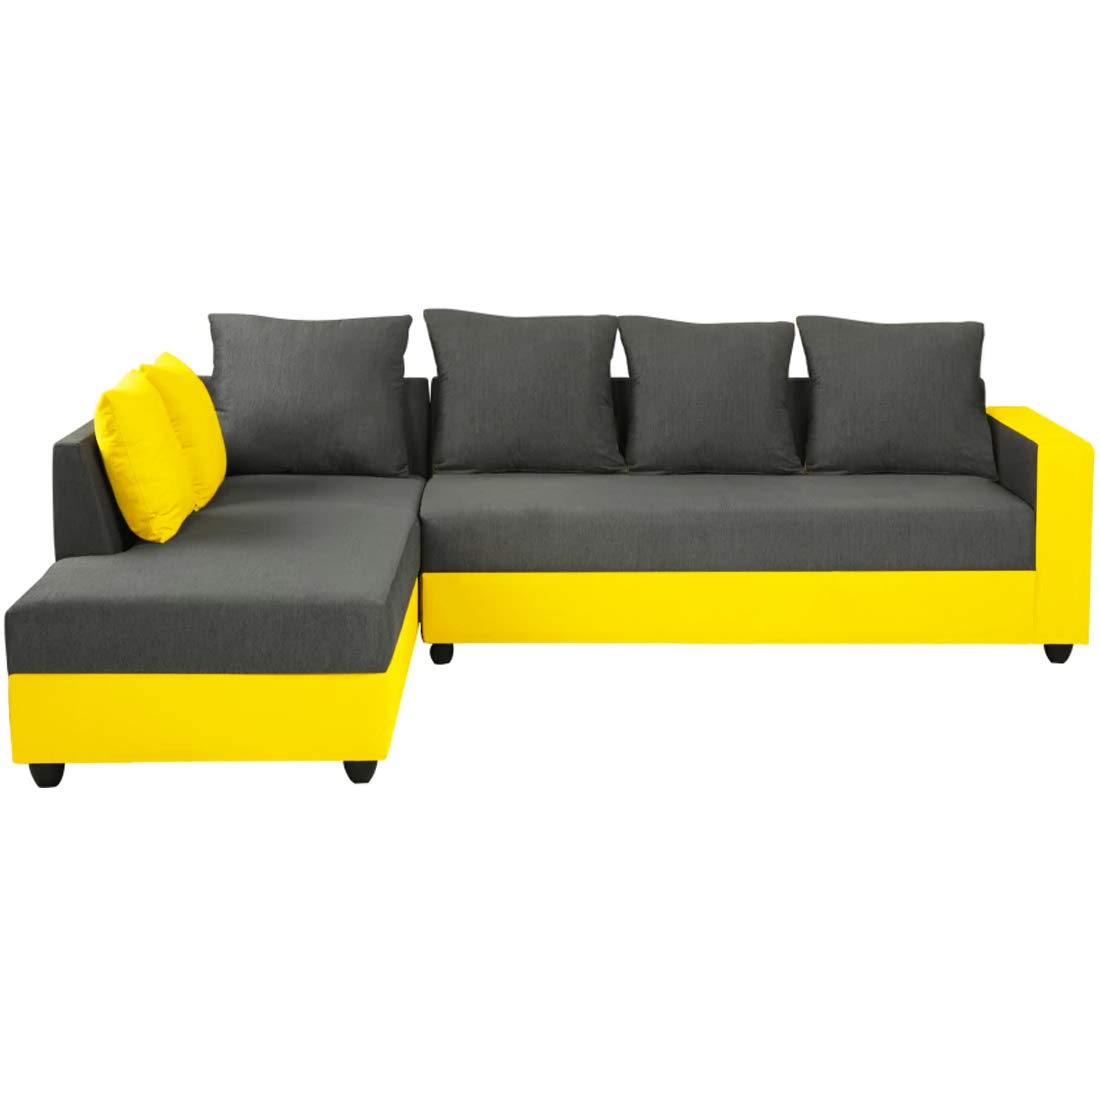 Woodcasa - Areo Six Seater L Shape Sofa - LHS (Grey-Yellow)